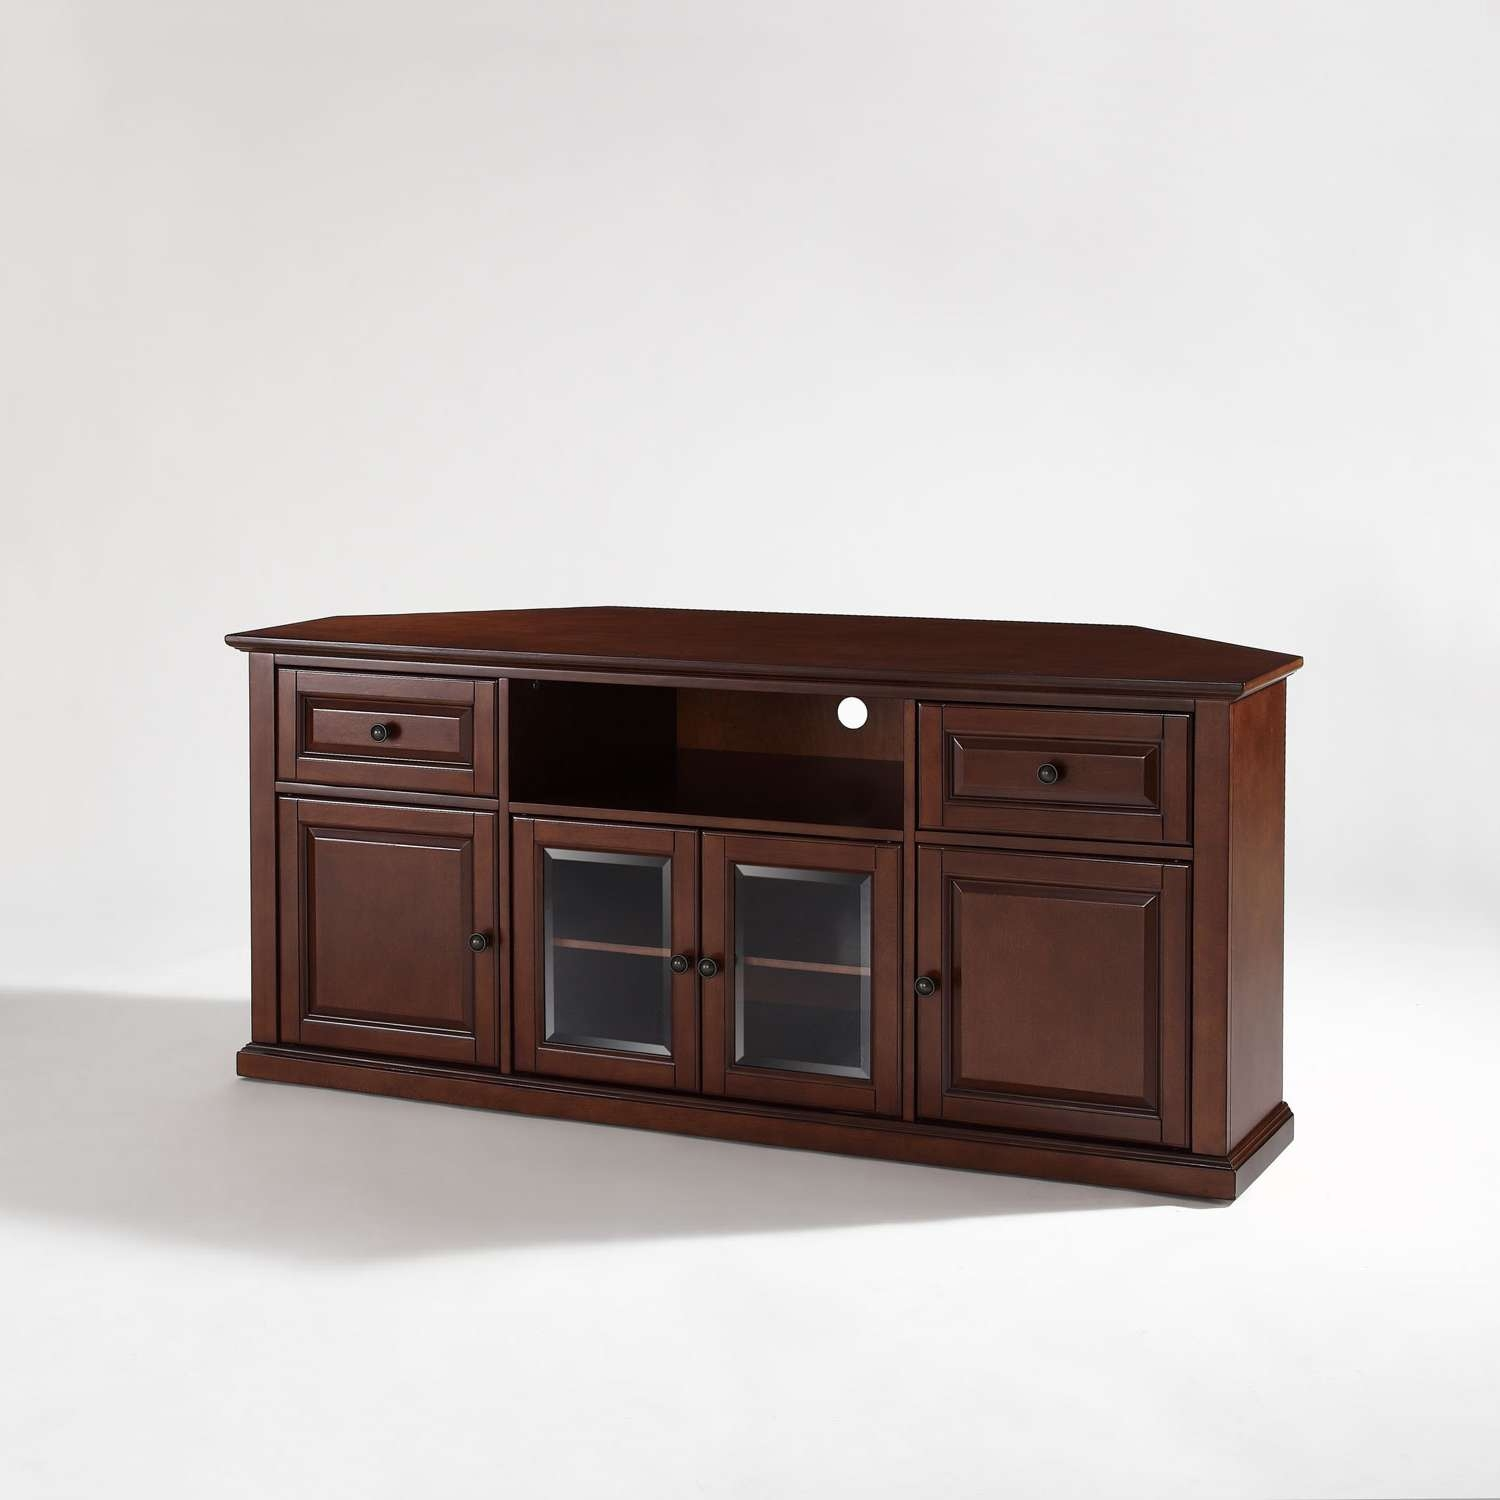 Tv Stands & Cabinets On Sale | Bellacor Intended For Retro Corner Tv Stands (View 10 of 15)